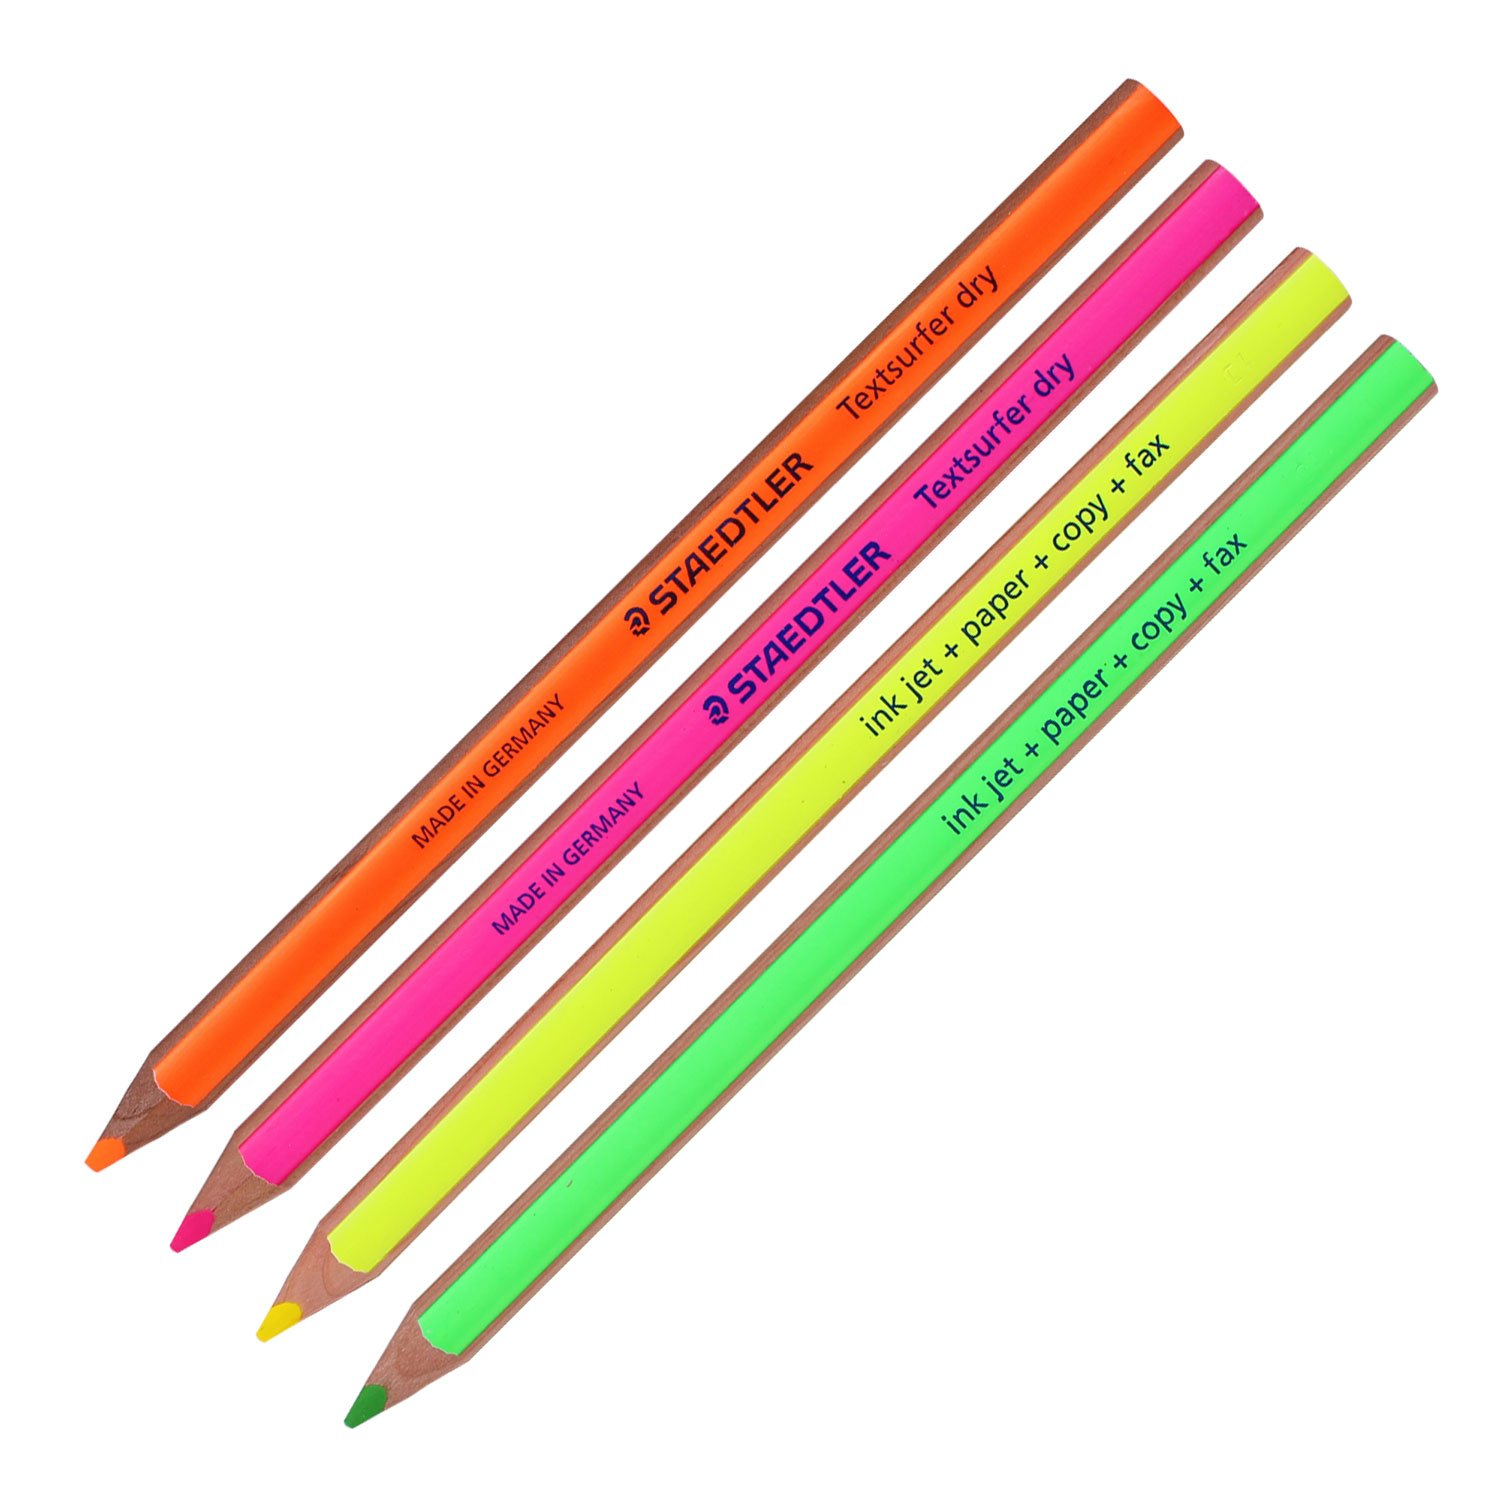 Amazon com staedtler textsurfer dry highlighter pencil 128 64 drawing for writing sketching inkjet paper copy faxpack of 4 color mix 4 pencils